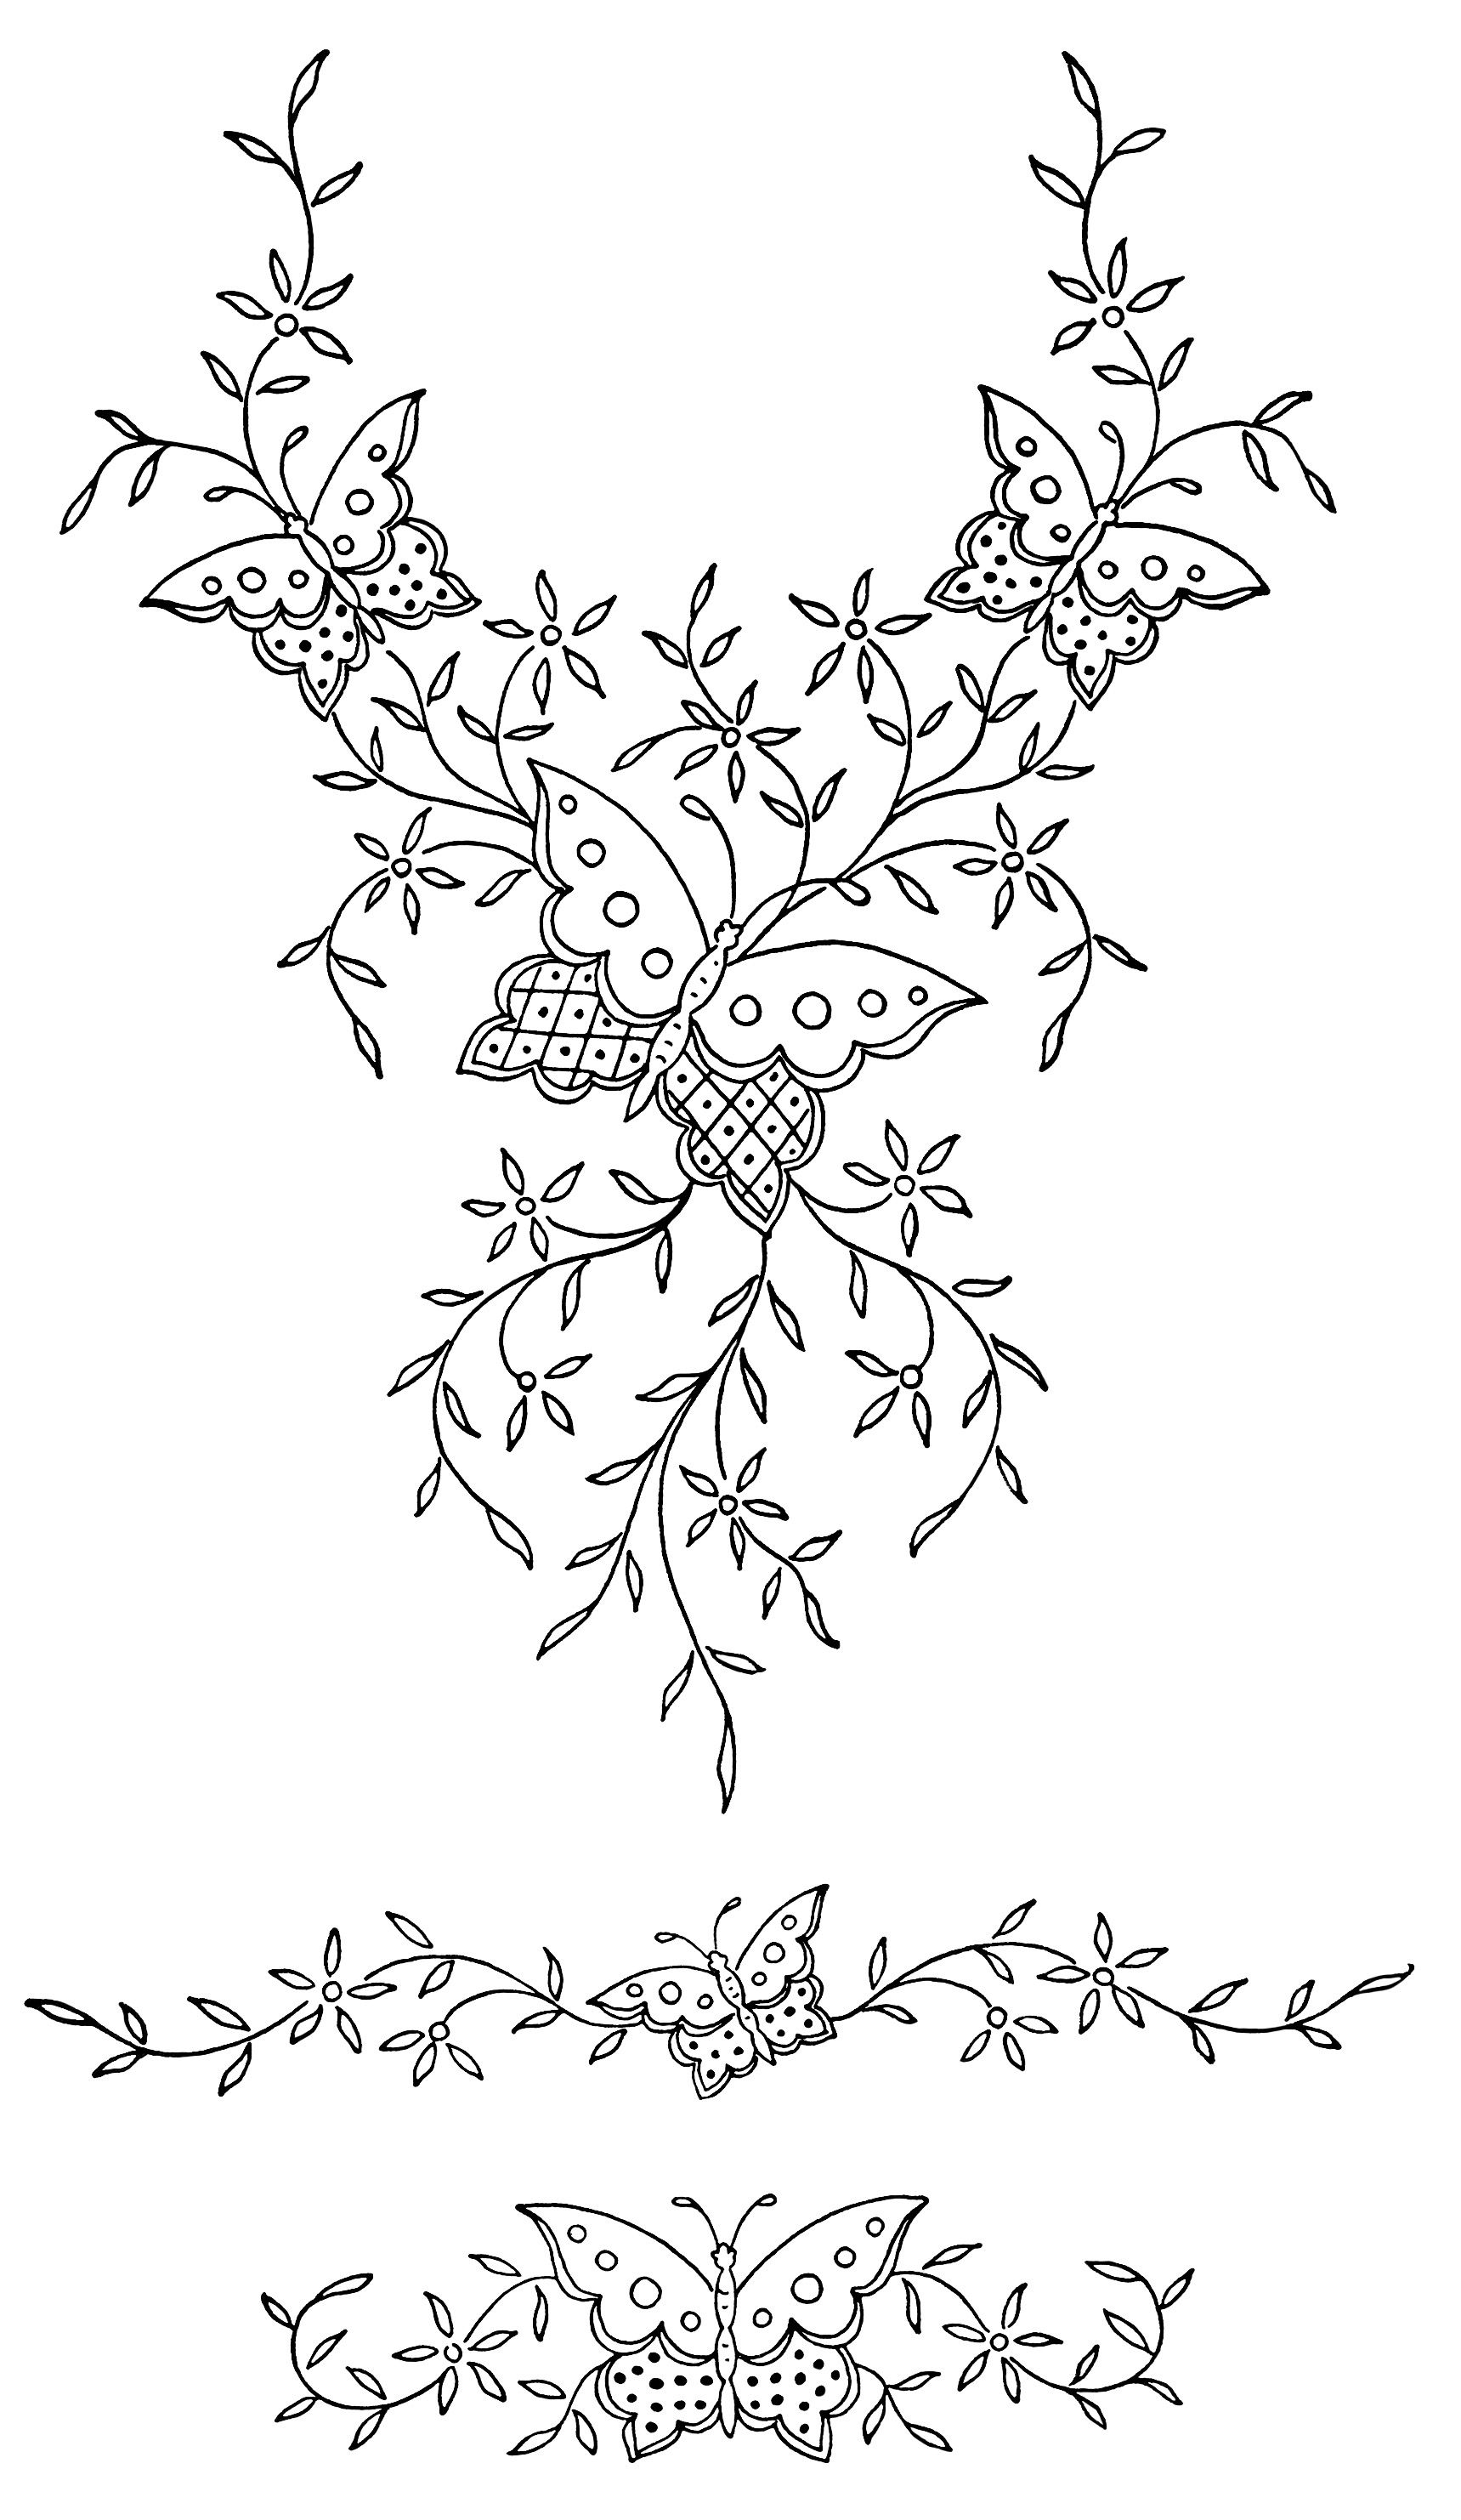 Butterflies flowers and leaves embroidery pattern free